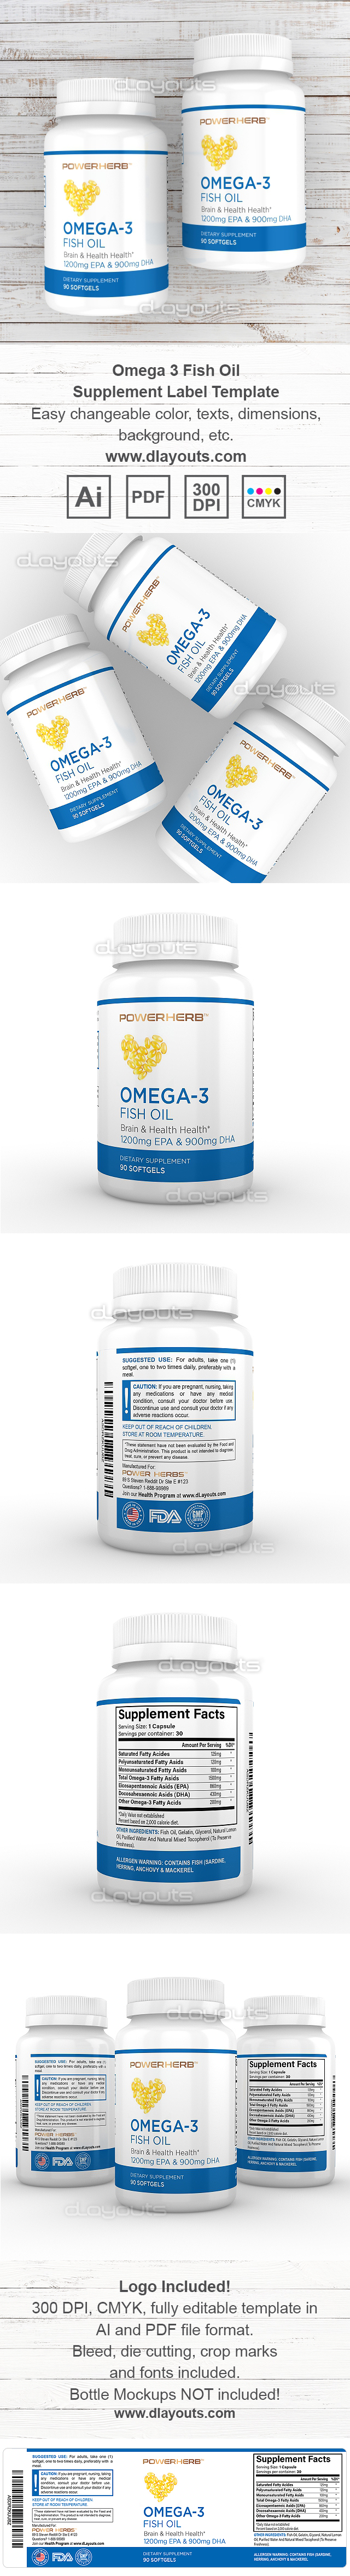 Omega-3 Fish Oil Supplement Label Template